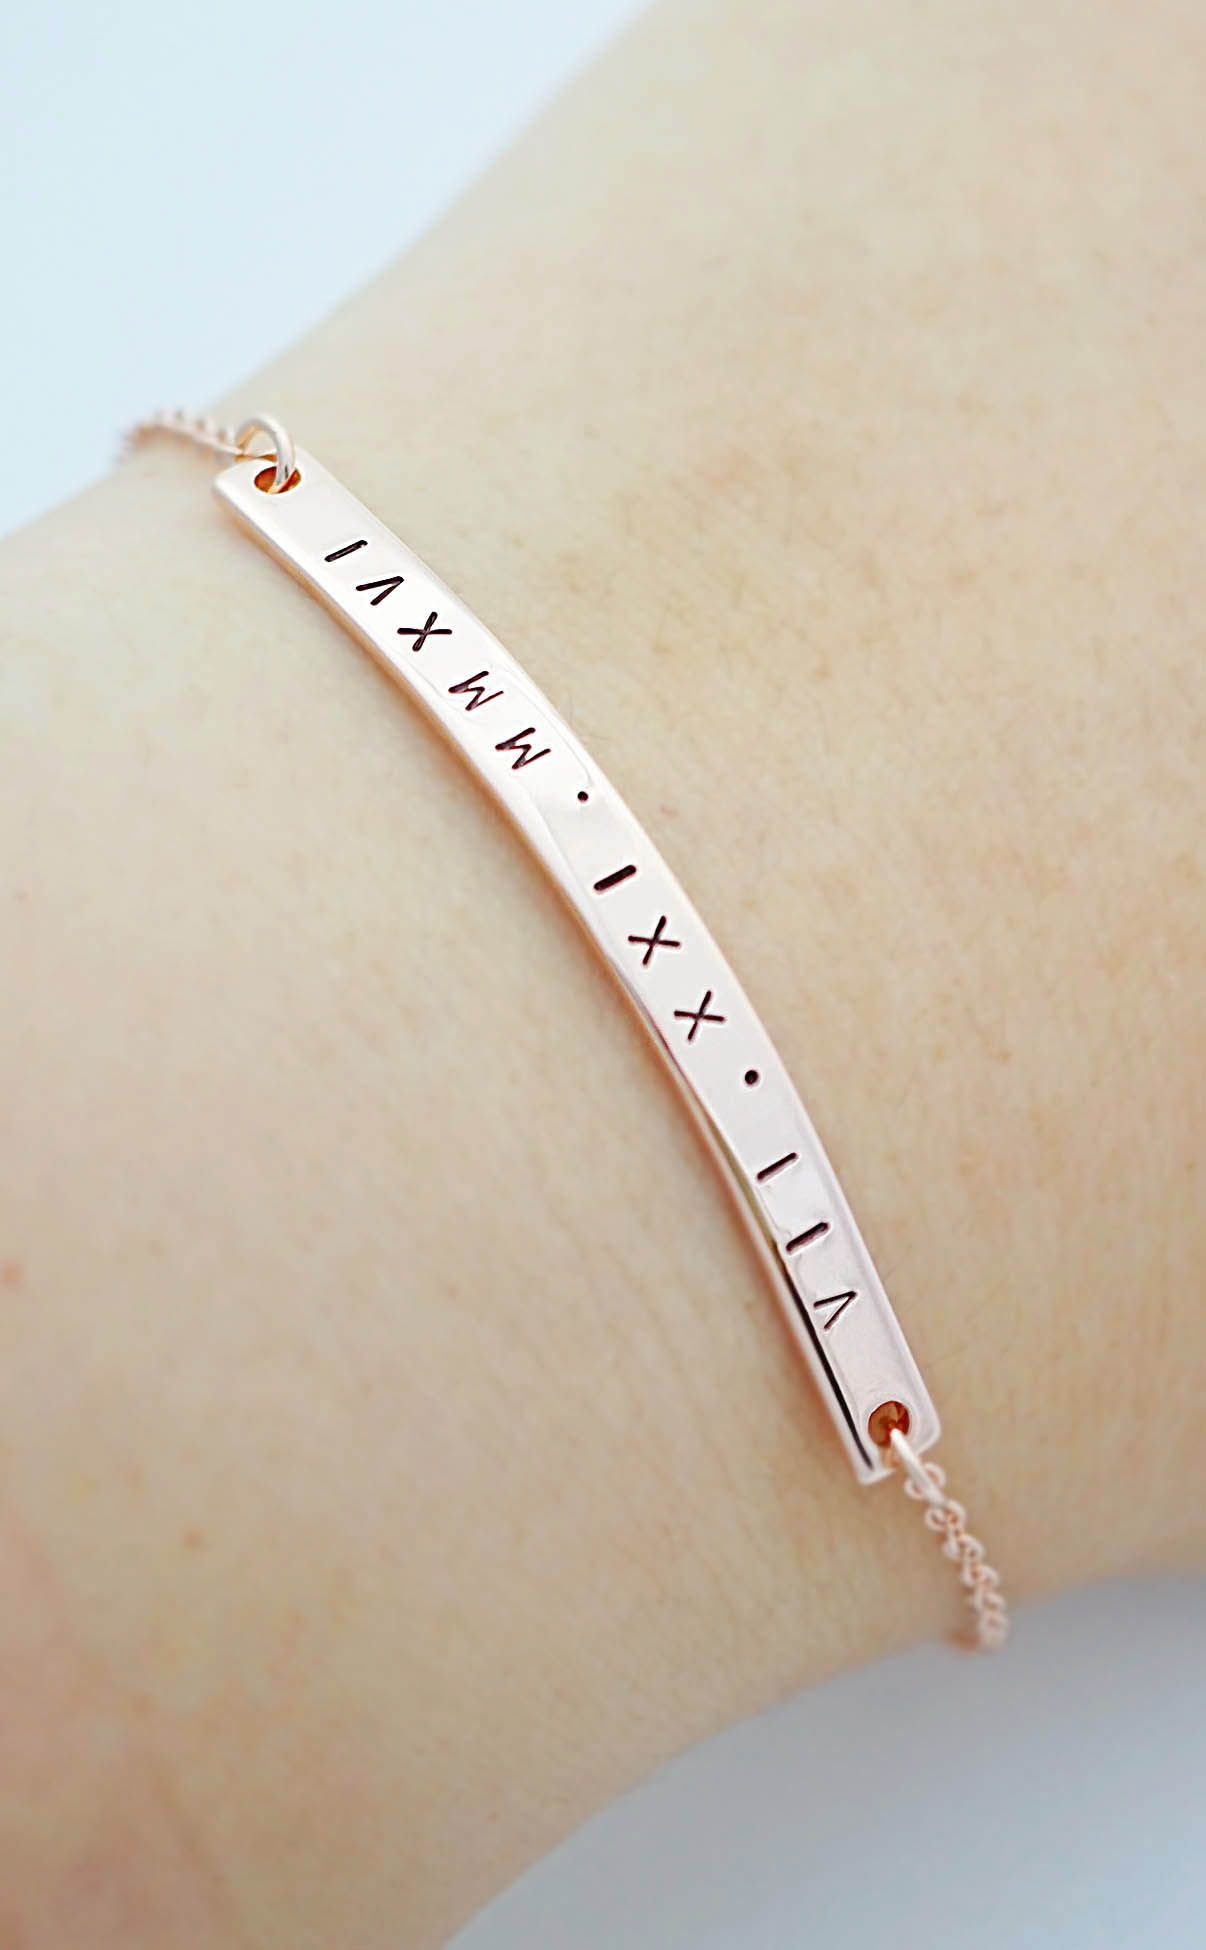 personalised lotus meditation jewellery initial personalized fullxfull bracelet products charm bangle yoga monogram il